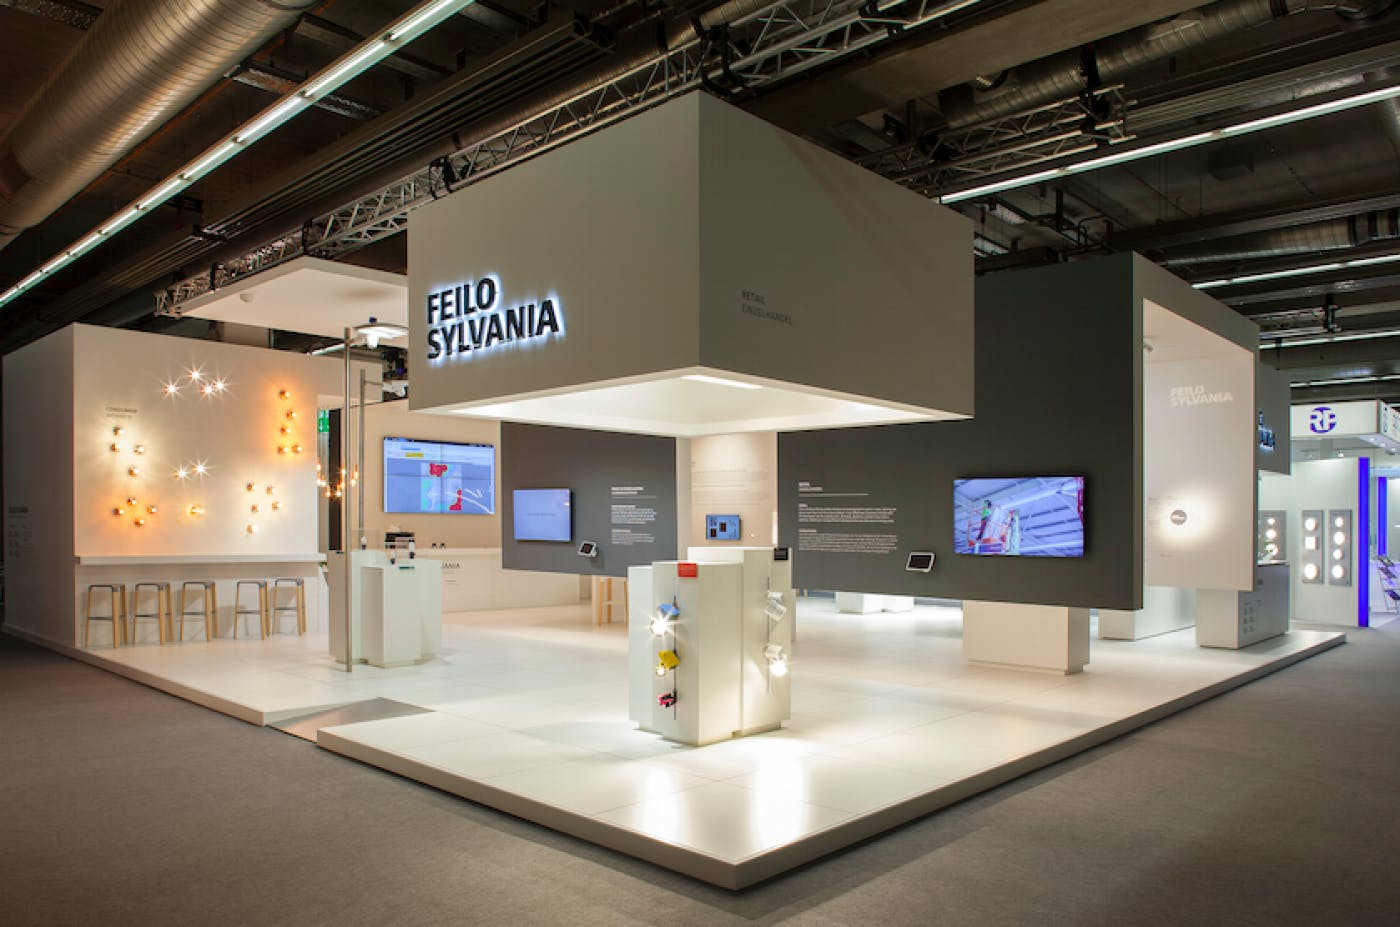 How Architectural Lighting Solutions Company Feilo Sylvania Attracted over 5000 Visitors to Their Exhibition Stand Using ScreenCloud